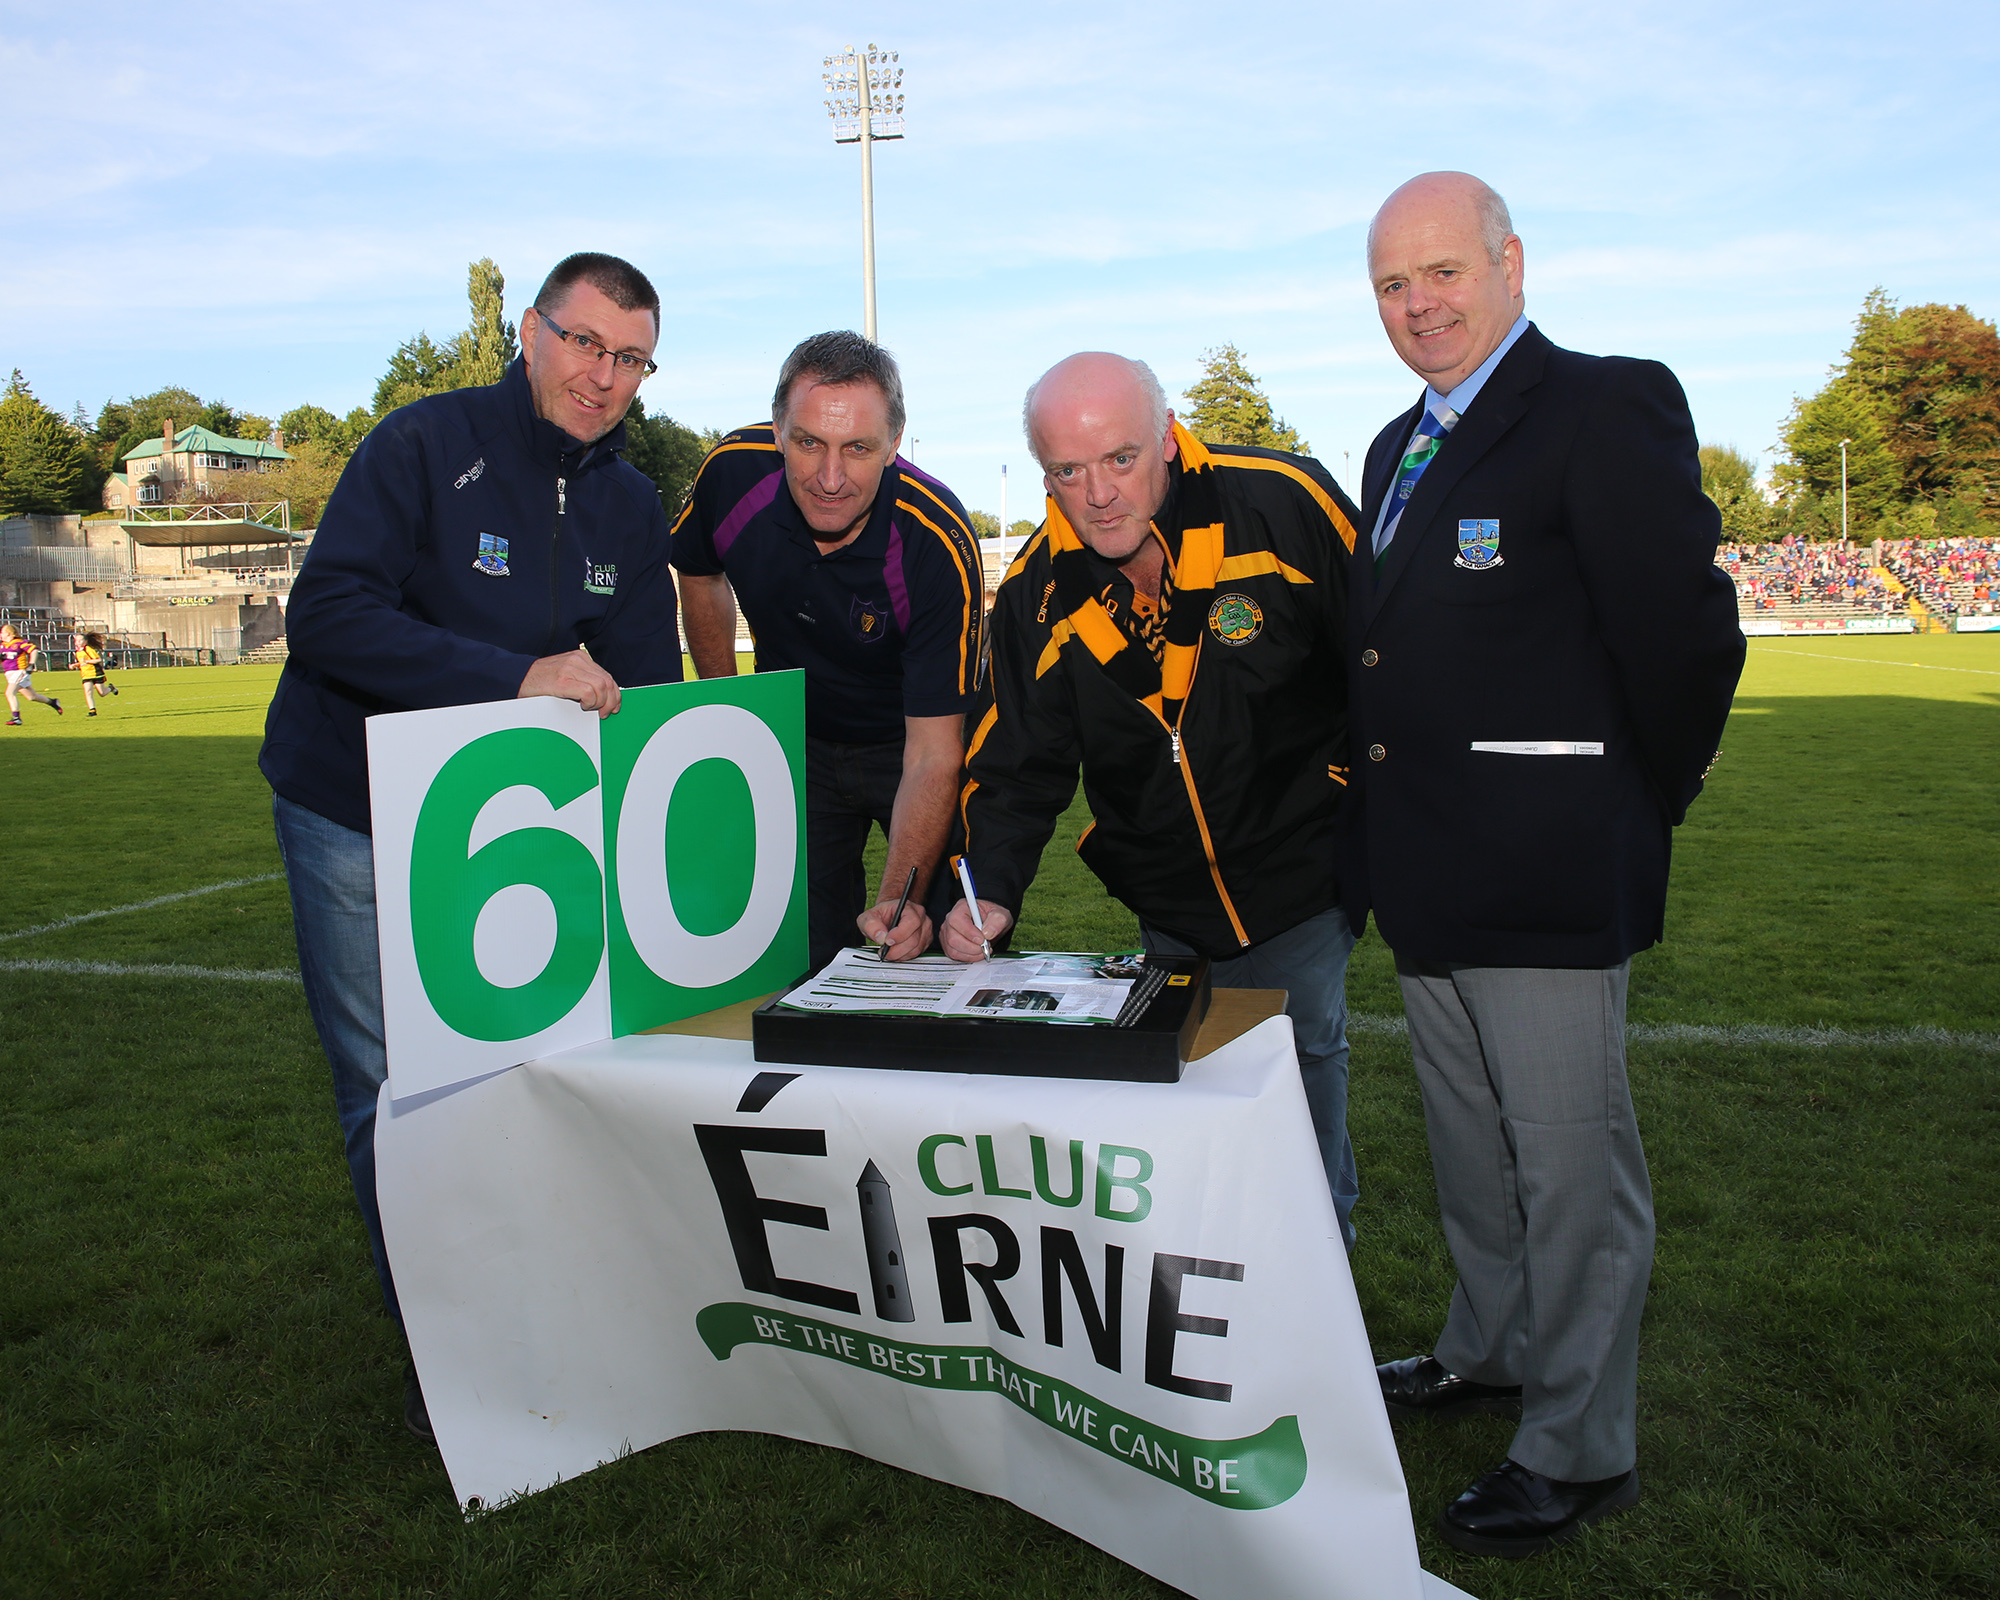 Club Eirne are 'Seeking Sixty'